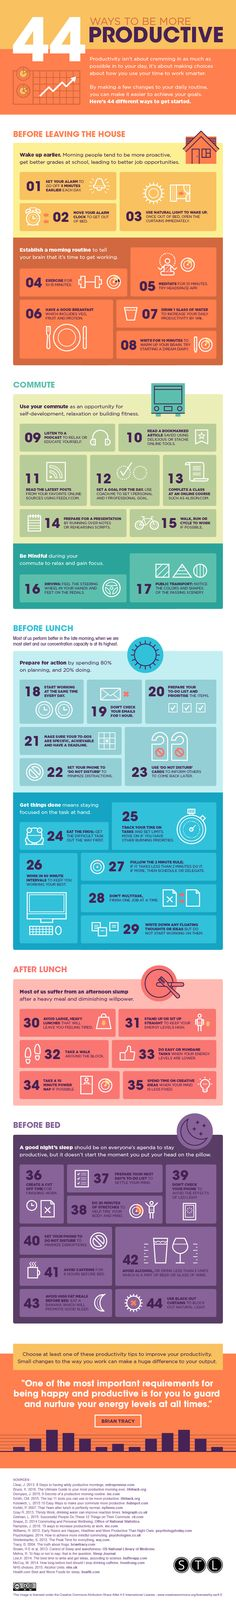 44 ways to be productive